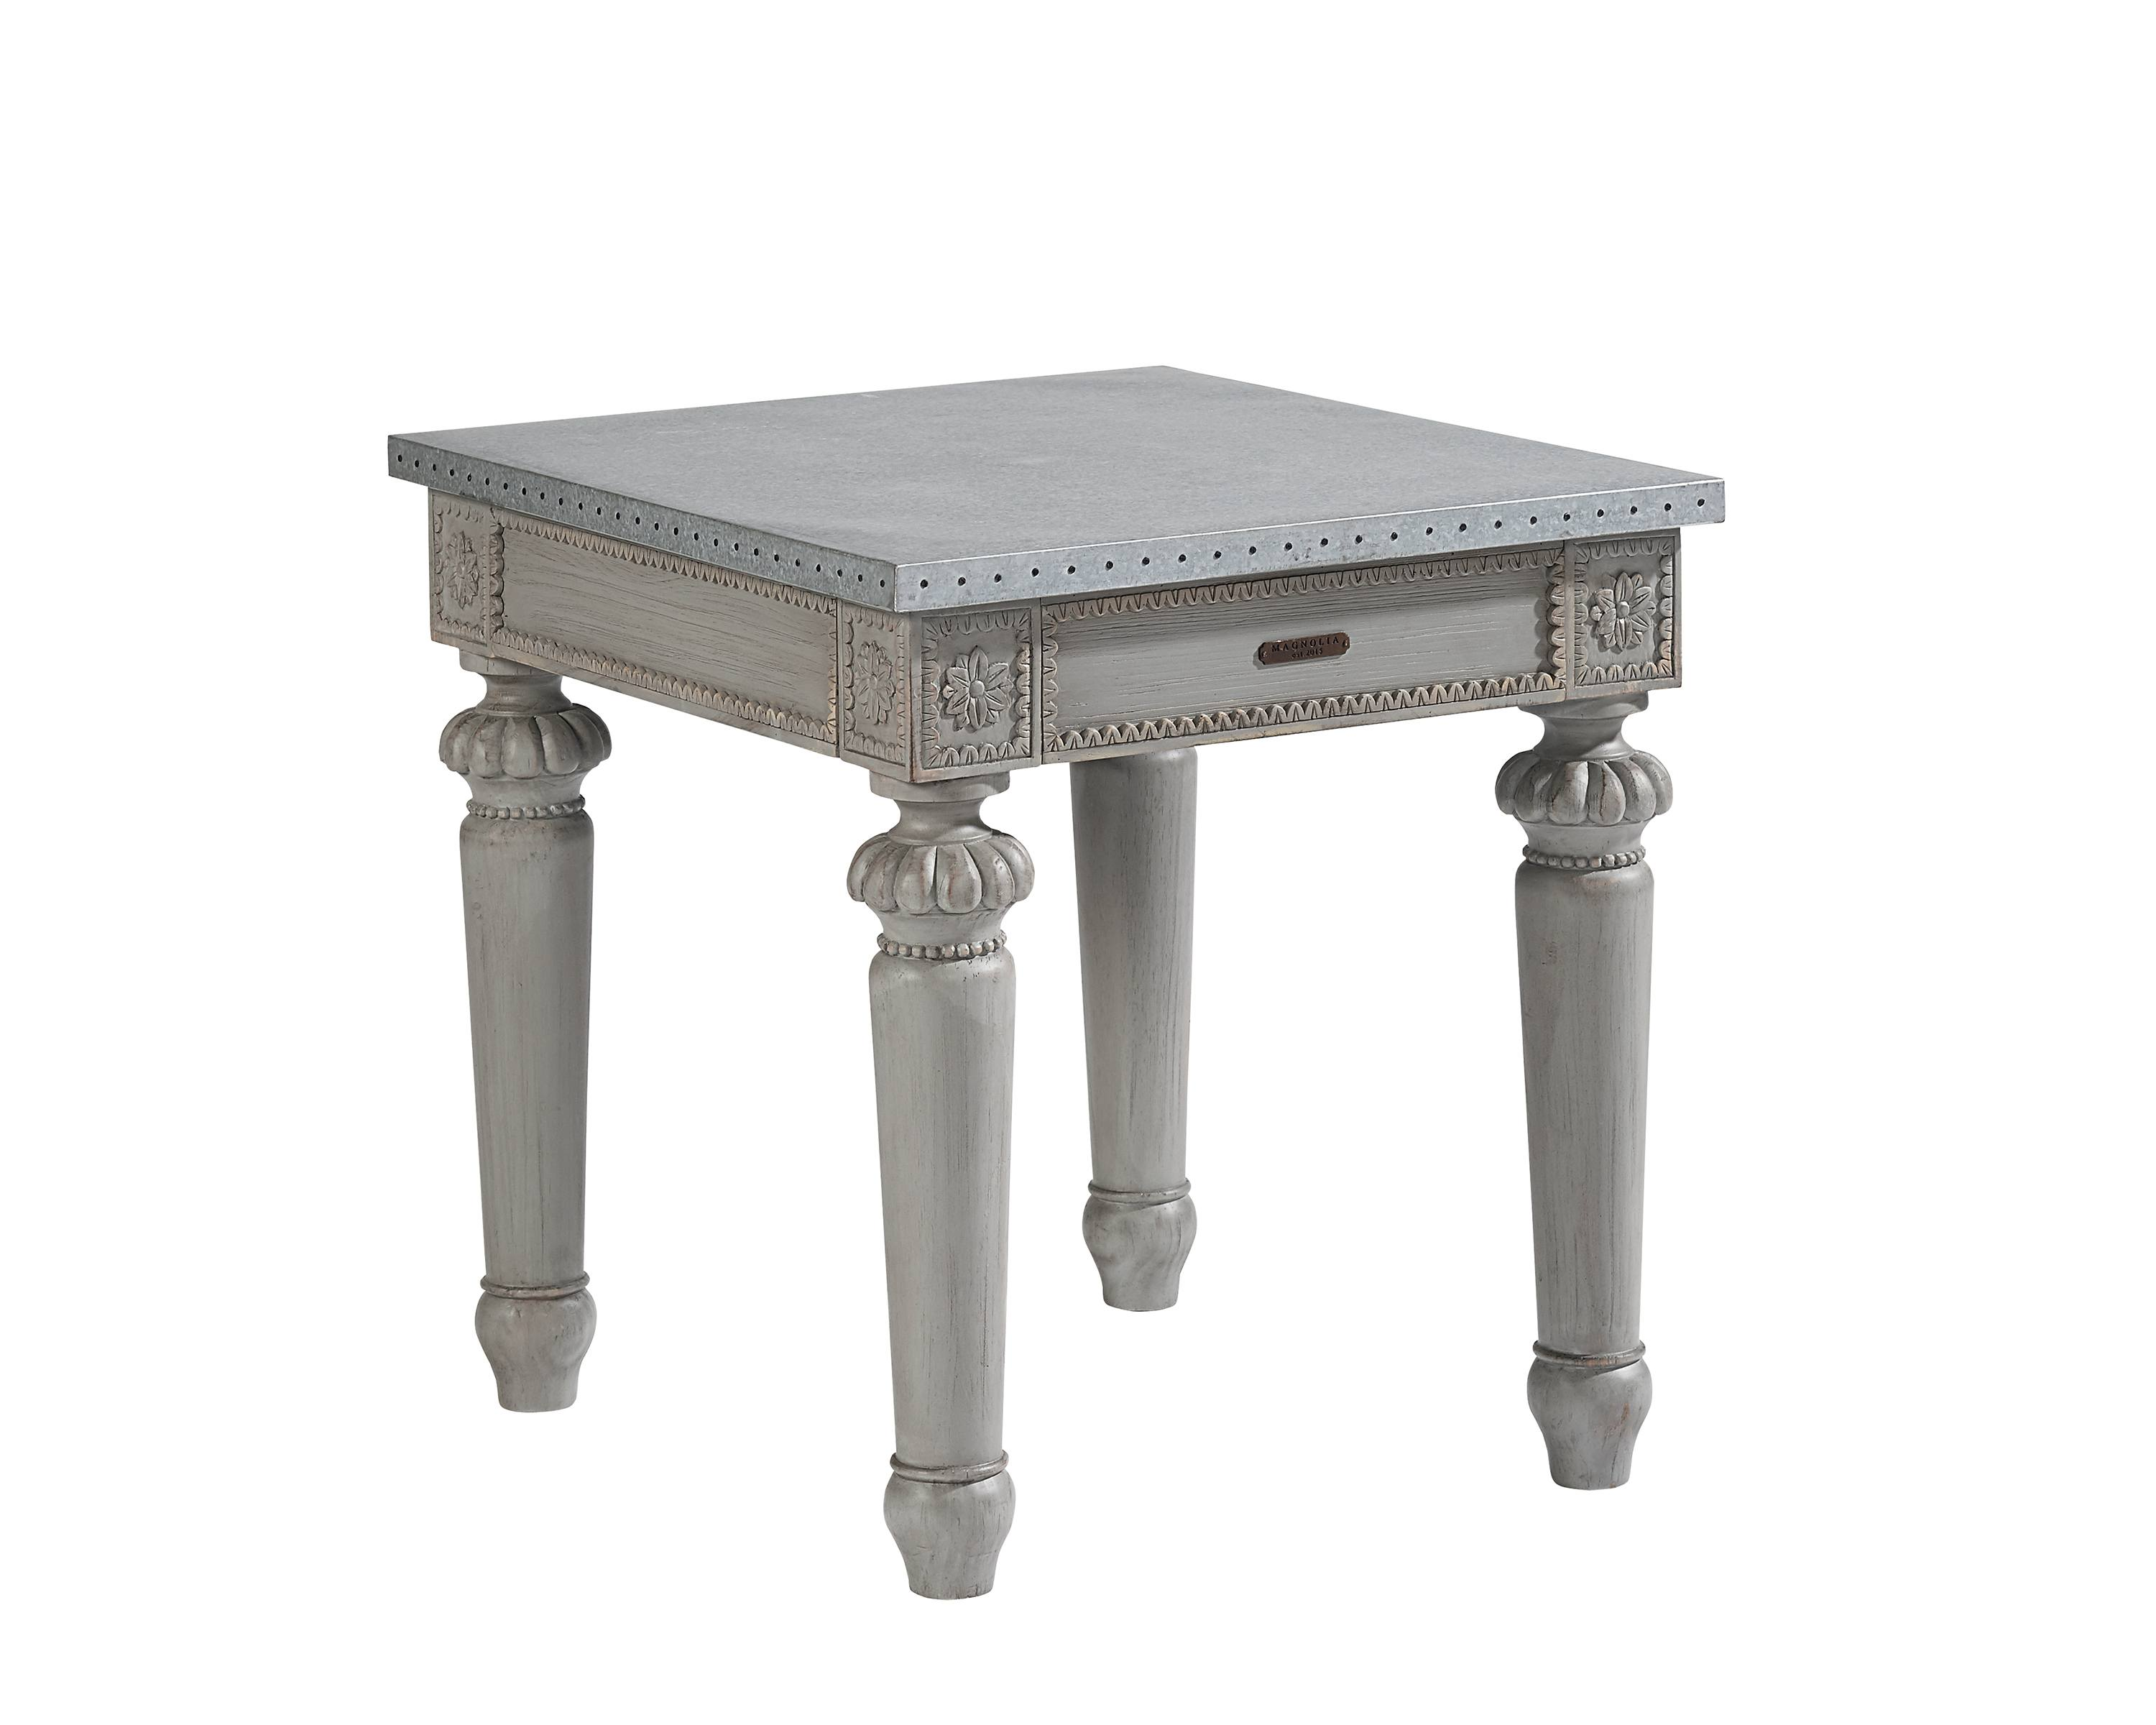 calais end table magnolia home accent with nailheads gold side lamps bay furniture metal coffee legs pier one credit card login entrance ideas day elemental outdoor covers whole